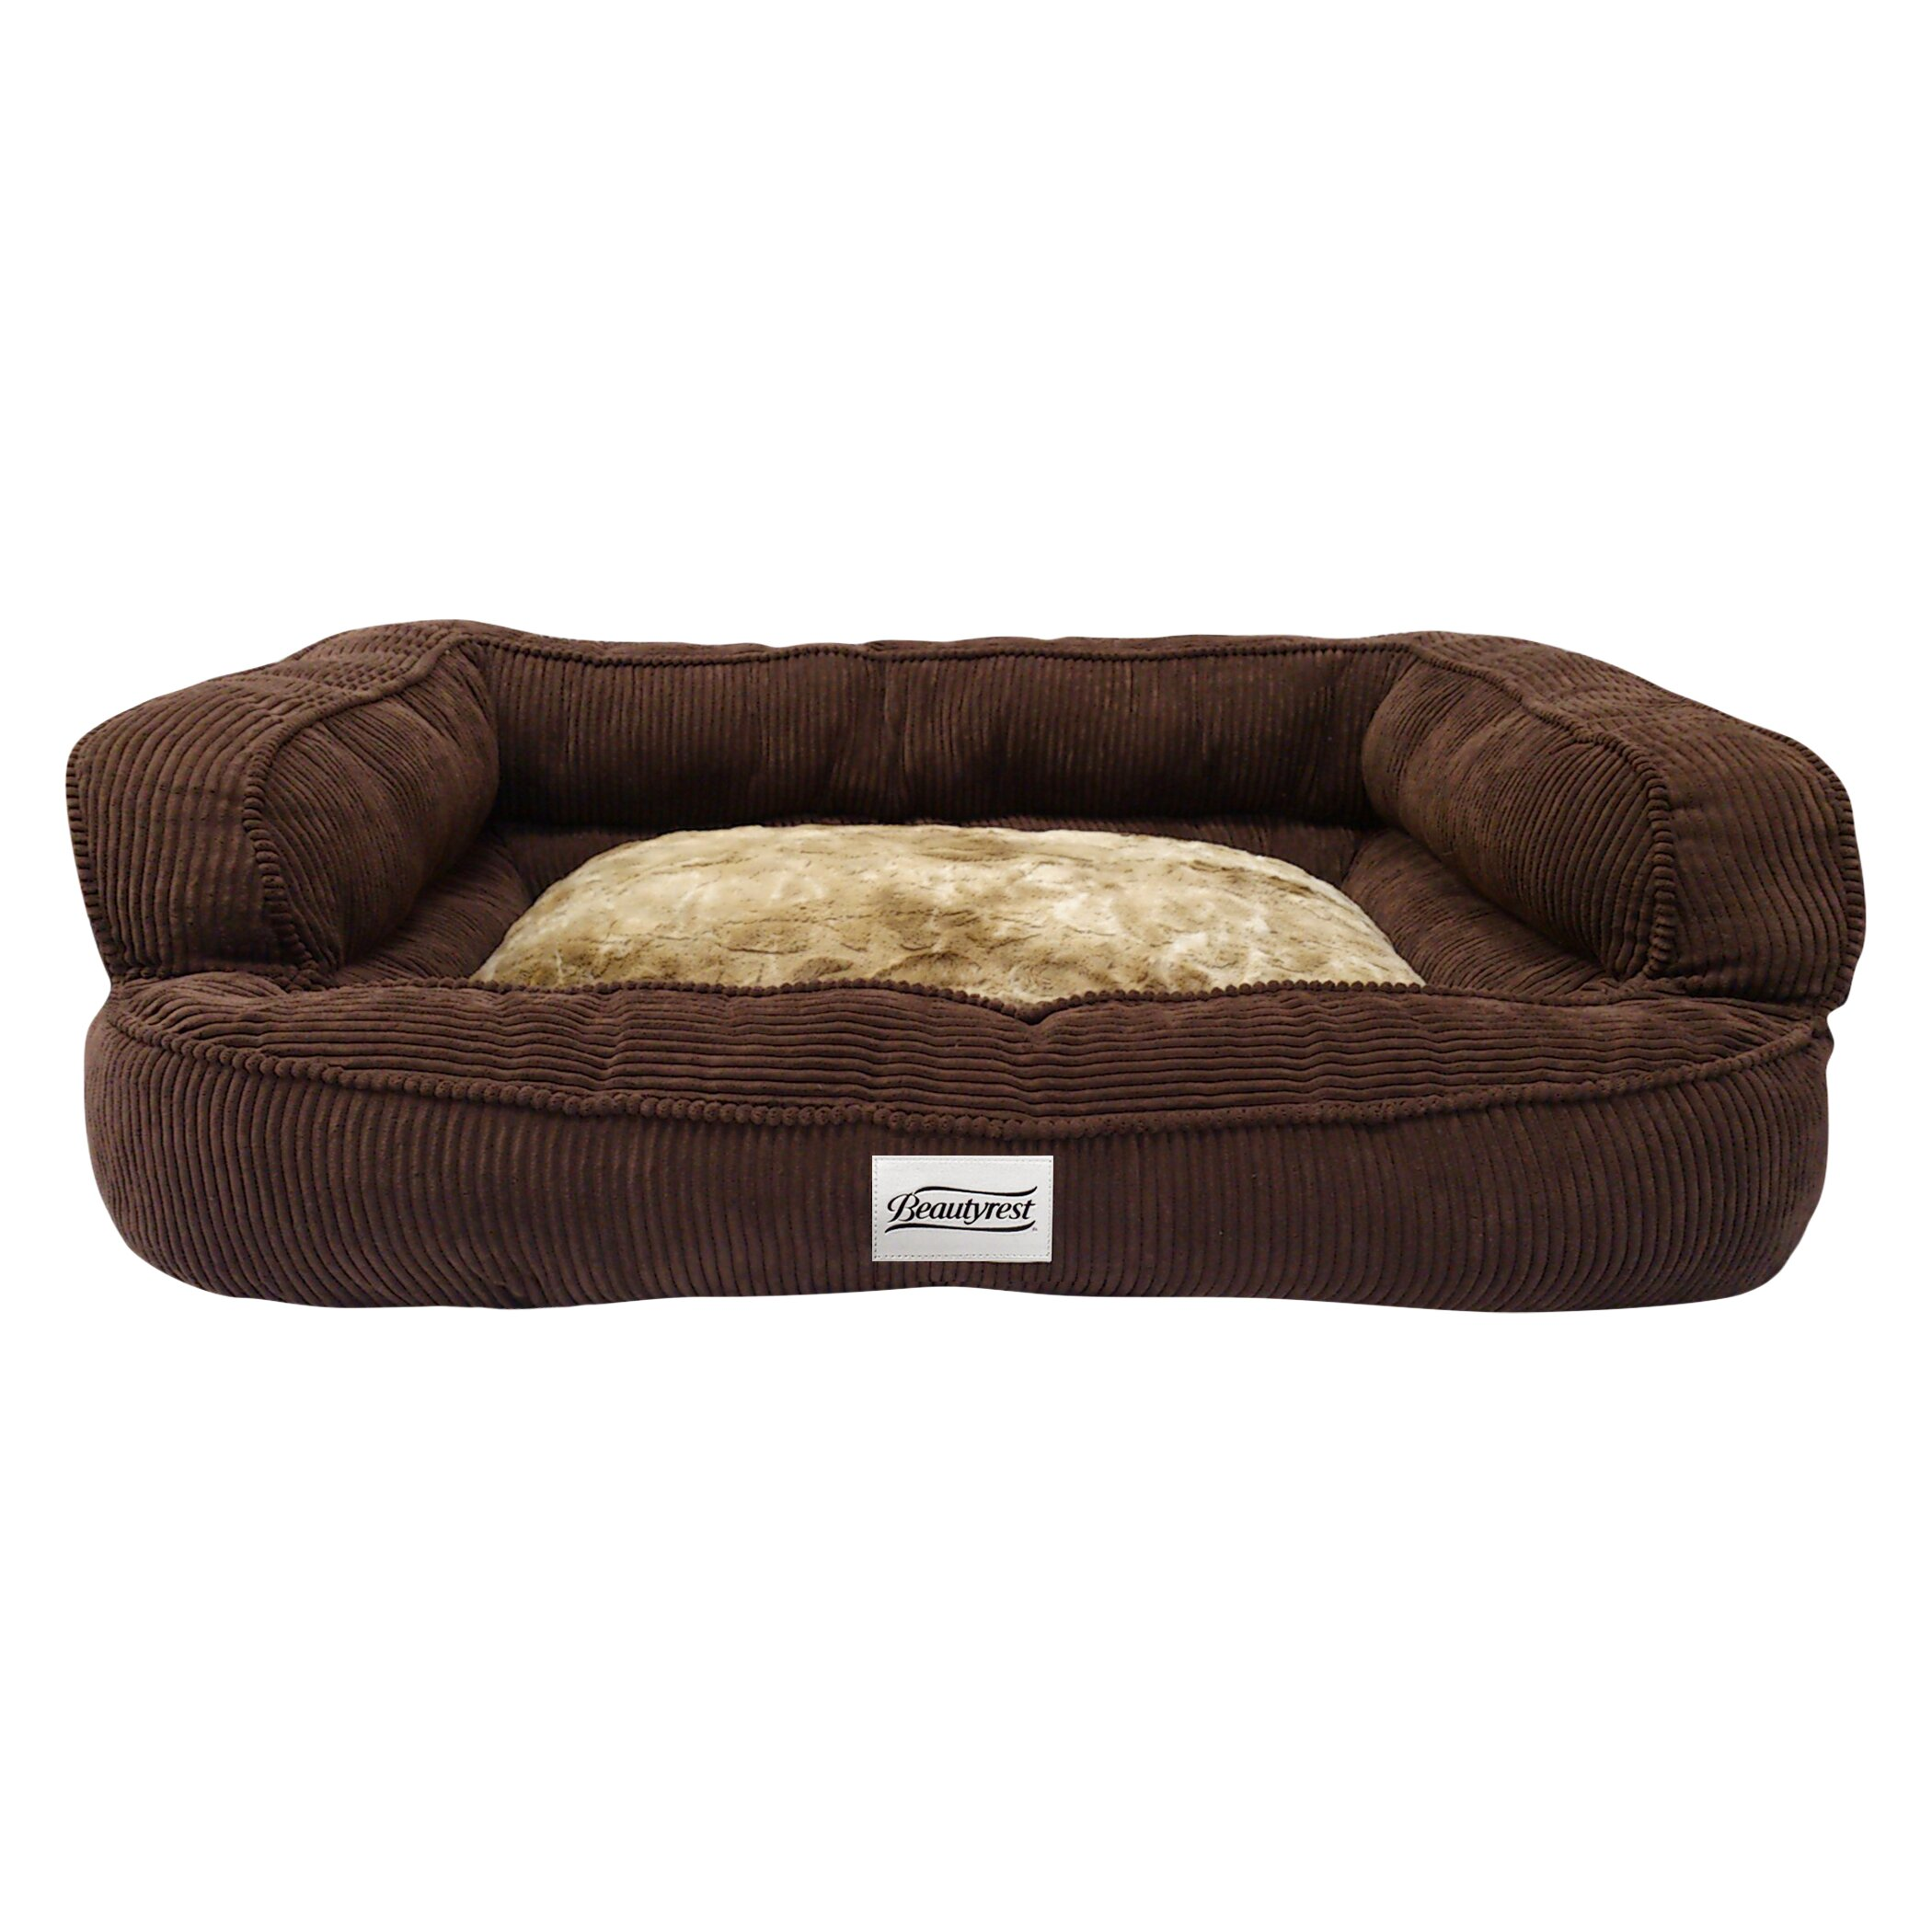 R2ppetltd Beautyrest Colossal Rest Dog Bed Amp Reviews